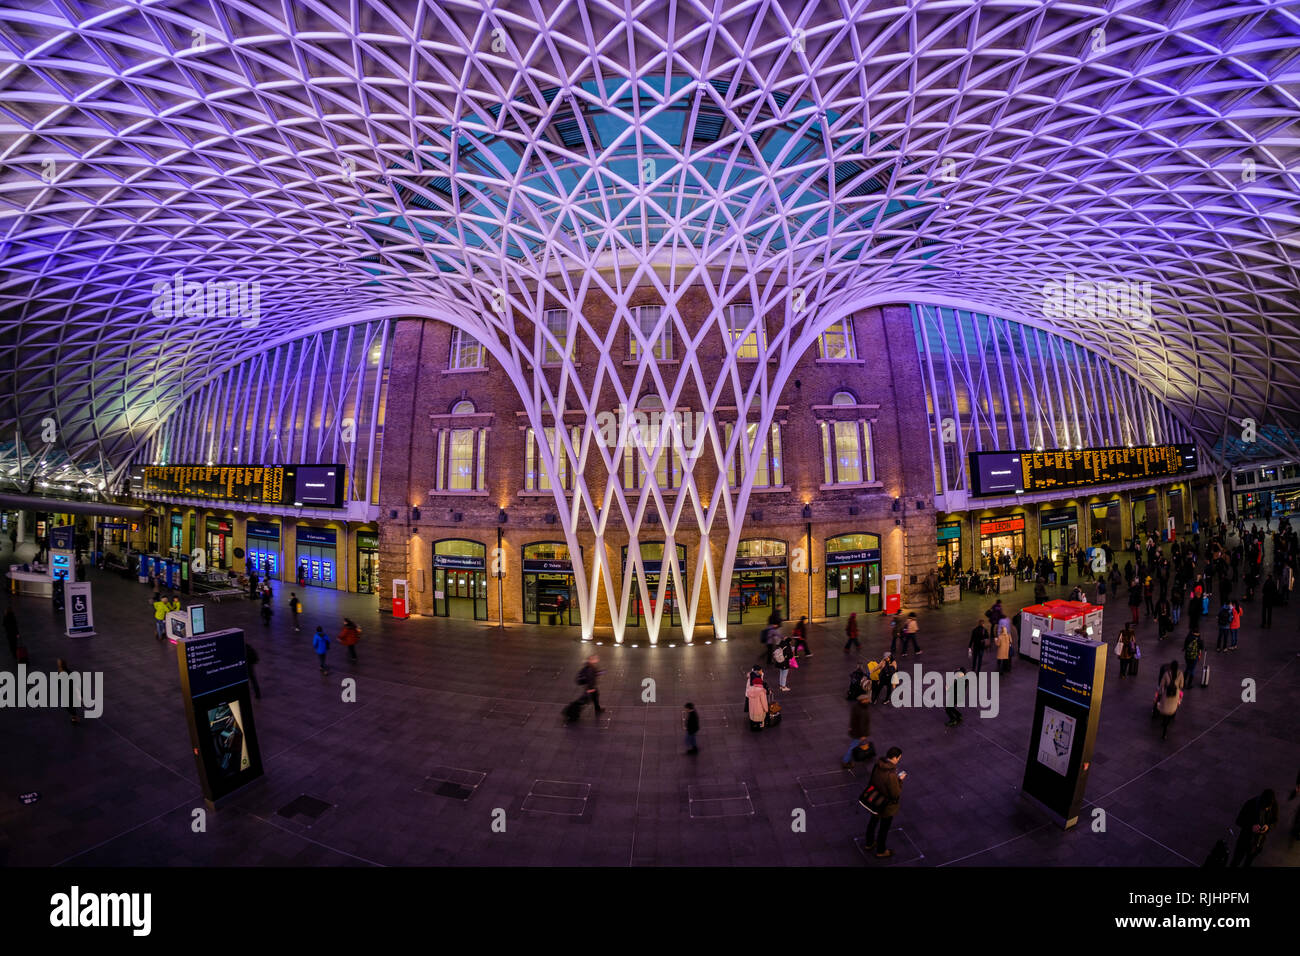 Kings Cross Railway Station, London, England - Stock Image